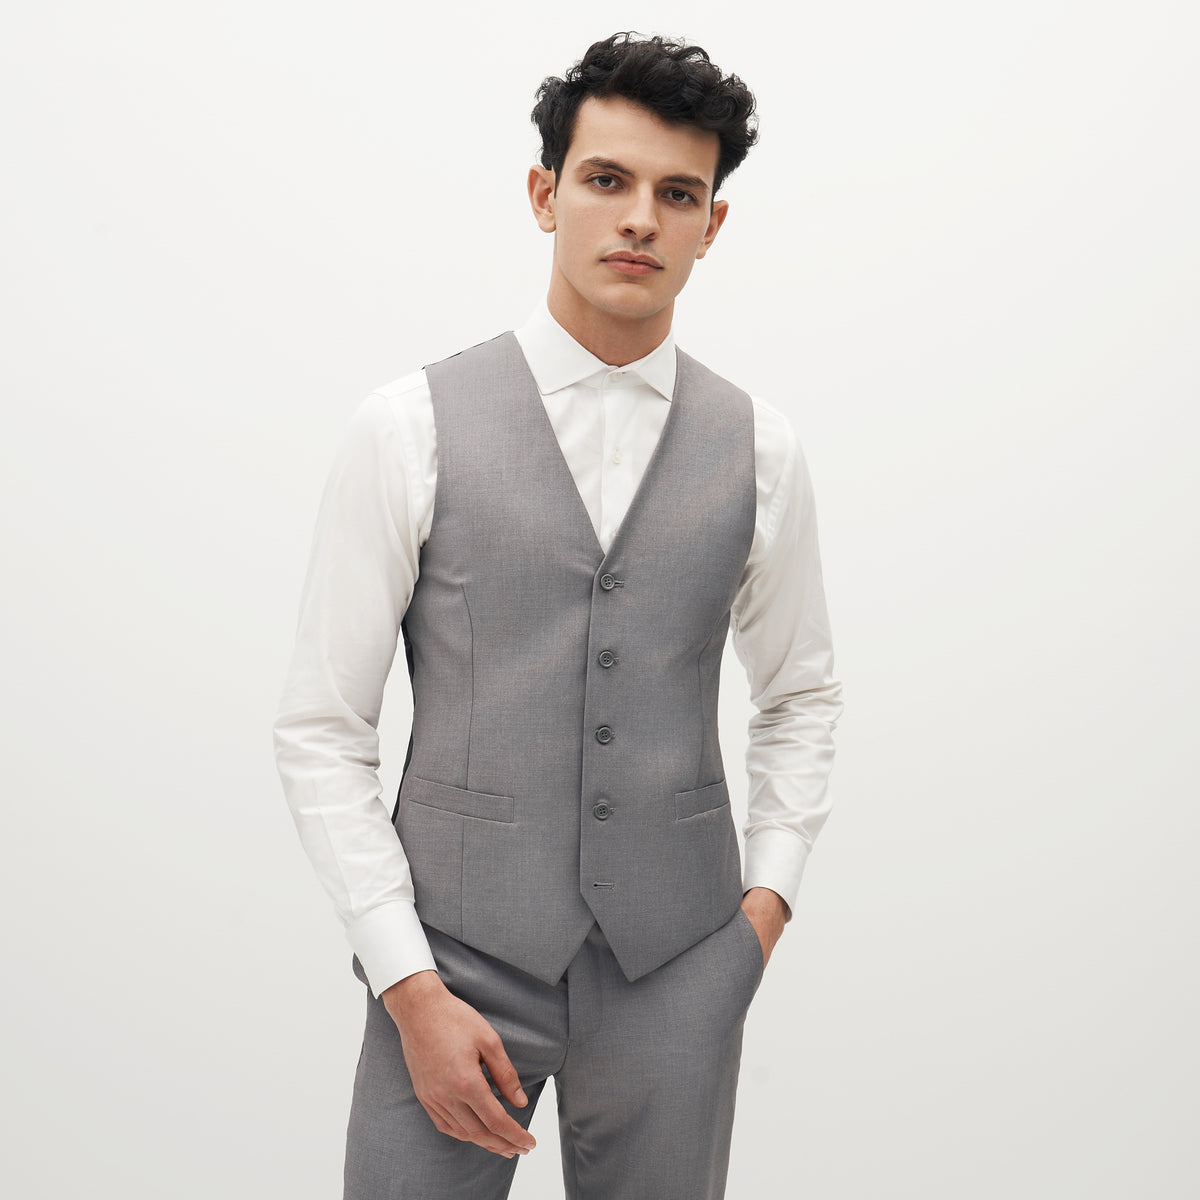 Textured Gray Suit Vest